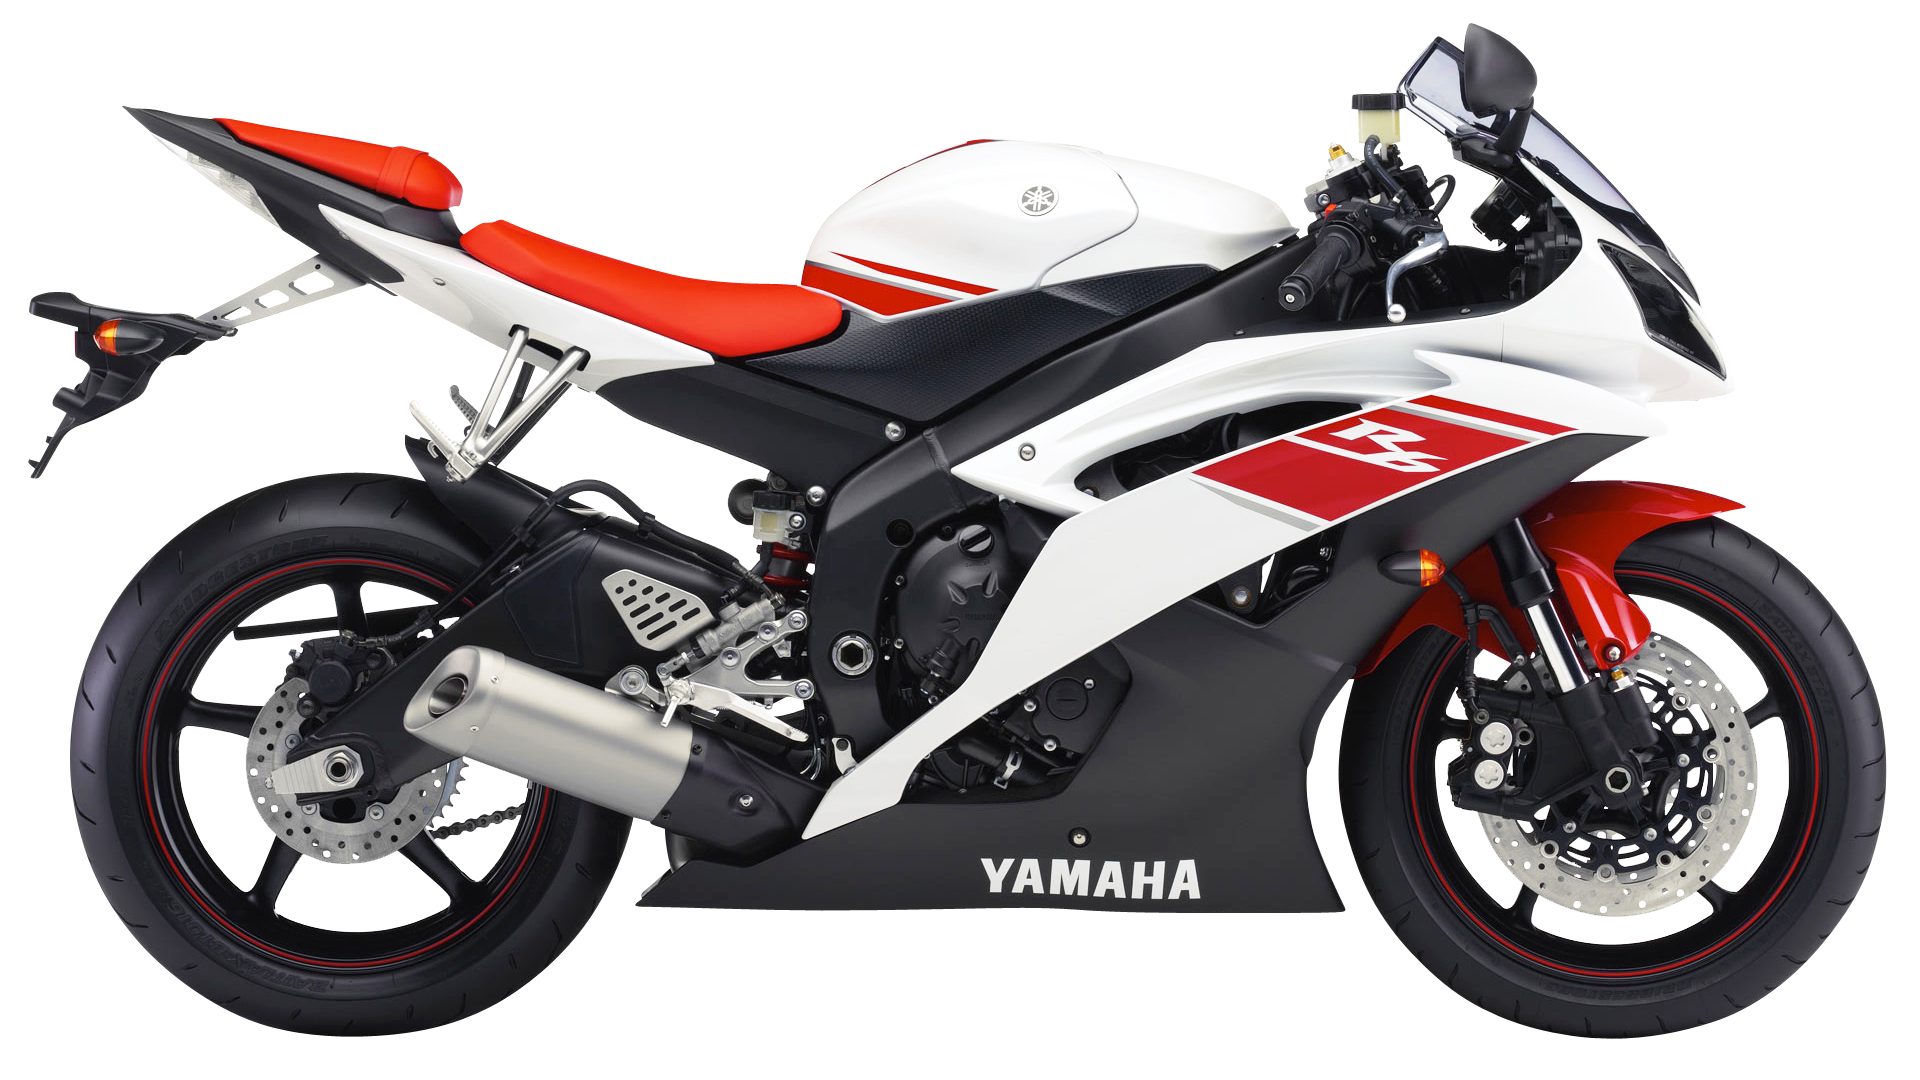 Yamaha YZF R6 Sport Motorcycl